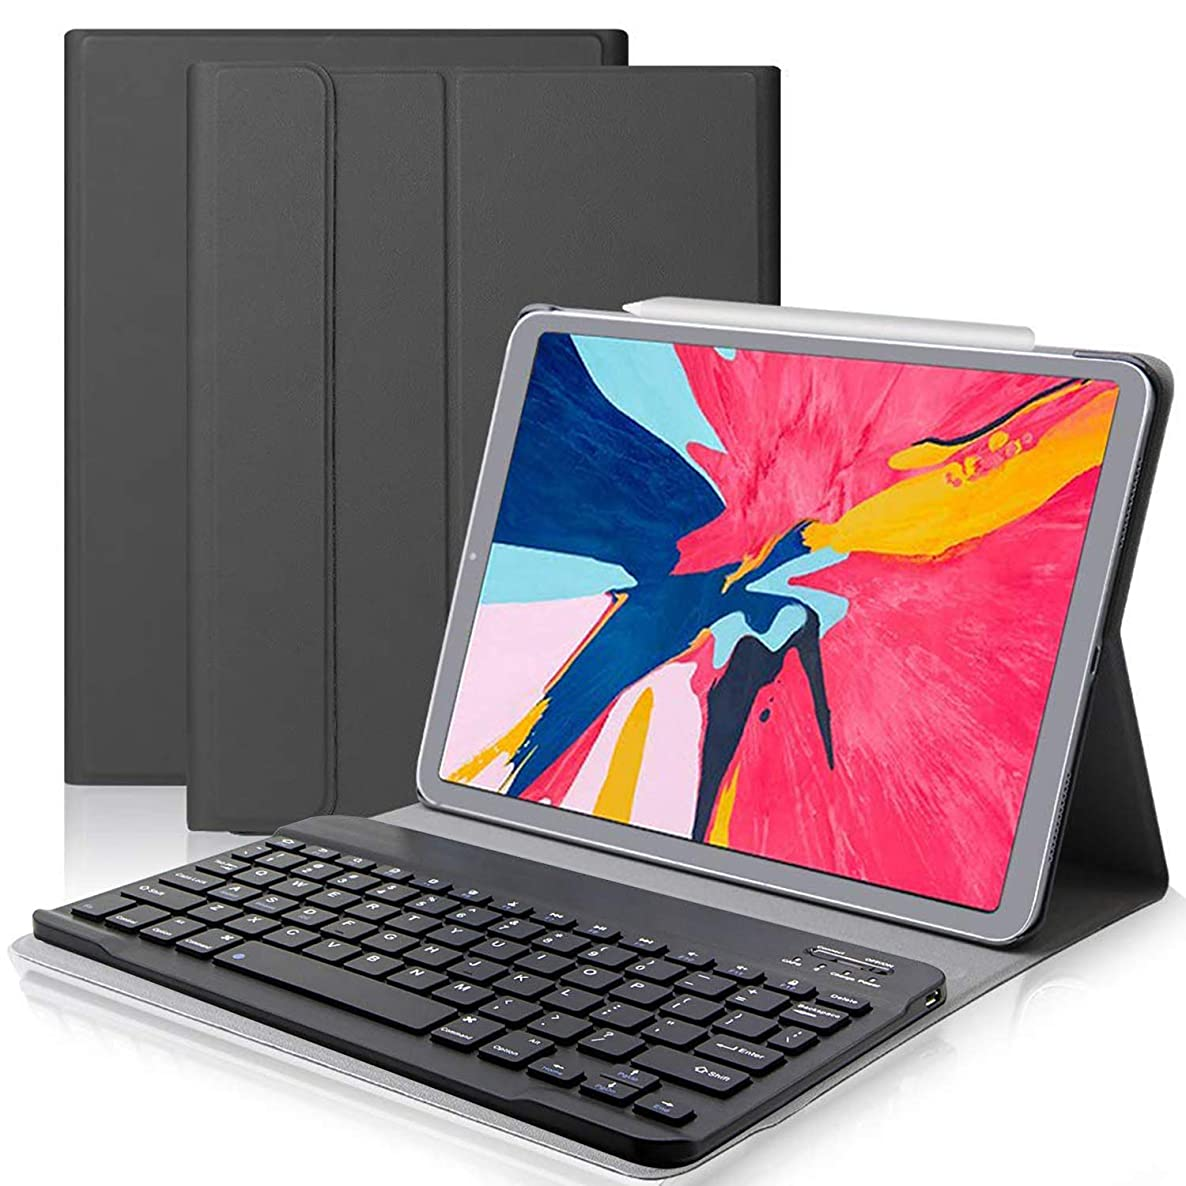 HISSP iPad Pro 11 Keyboard Case for 2018 iPad, VOIKERDR 2018 iPad Pro 11 inch Stand Case with Keyboard, Auto Sleep & Wake, Built-in Magnet, Removable Wireless Keyboard, Black